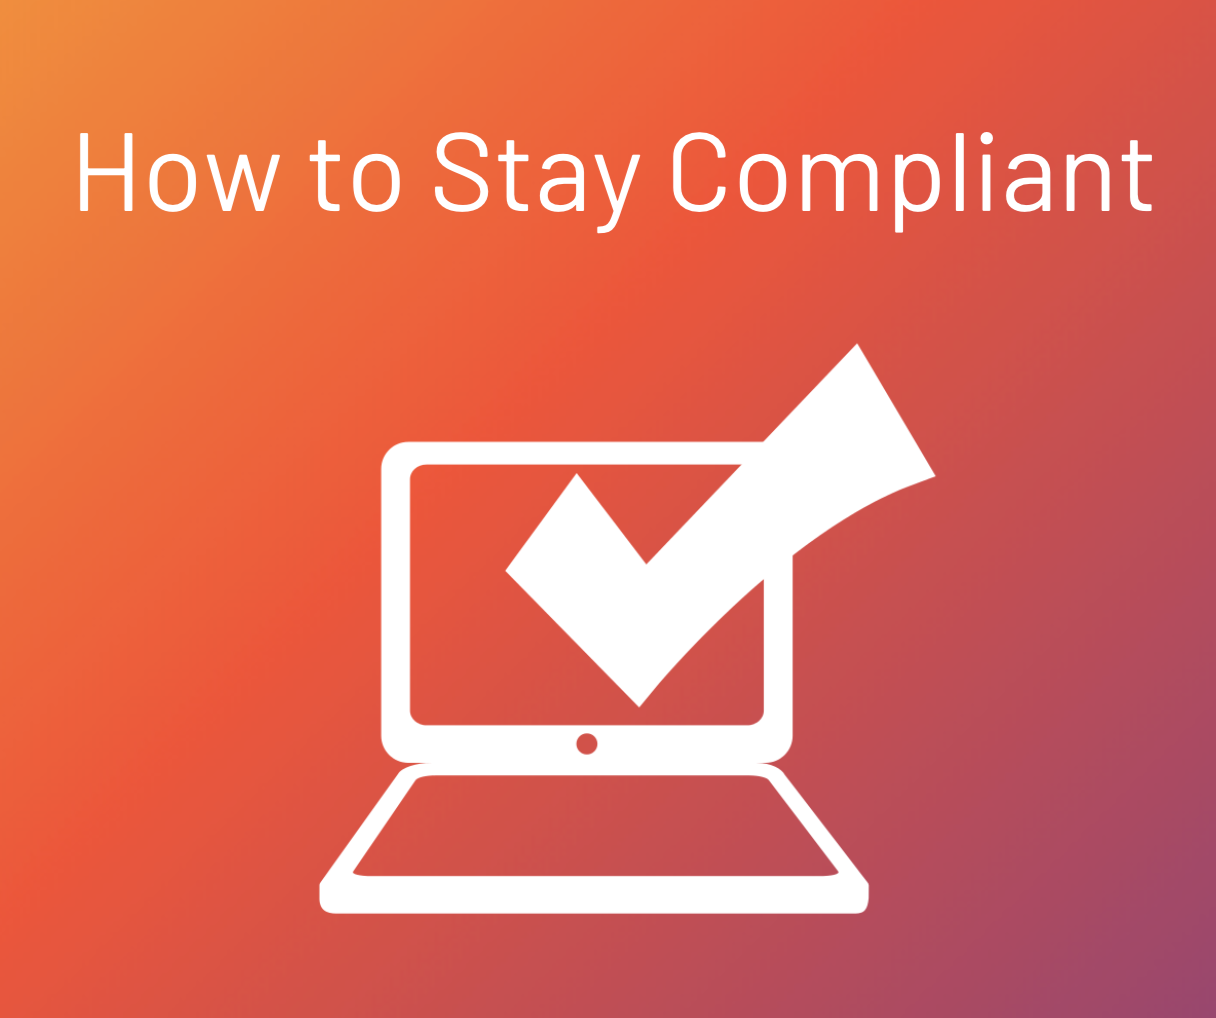 How to Stay Compliant